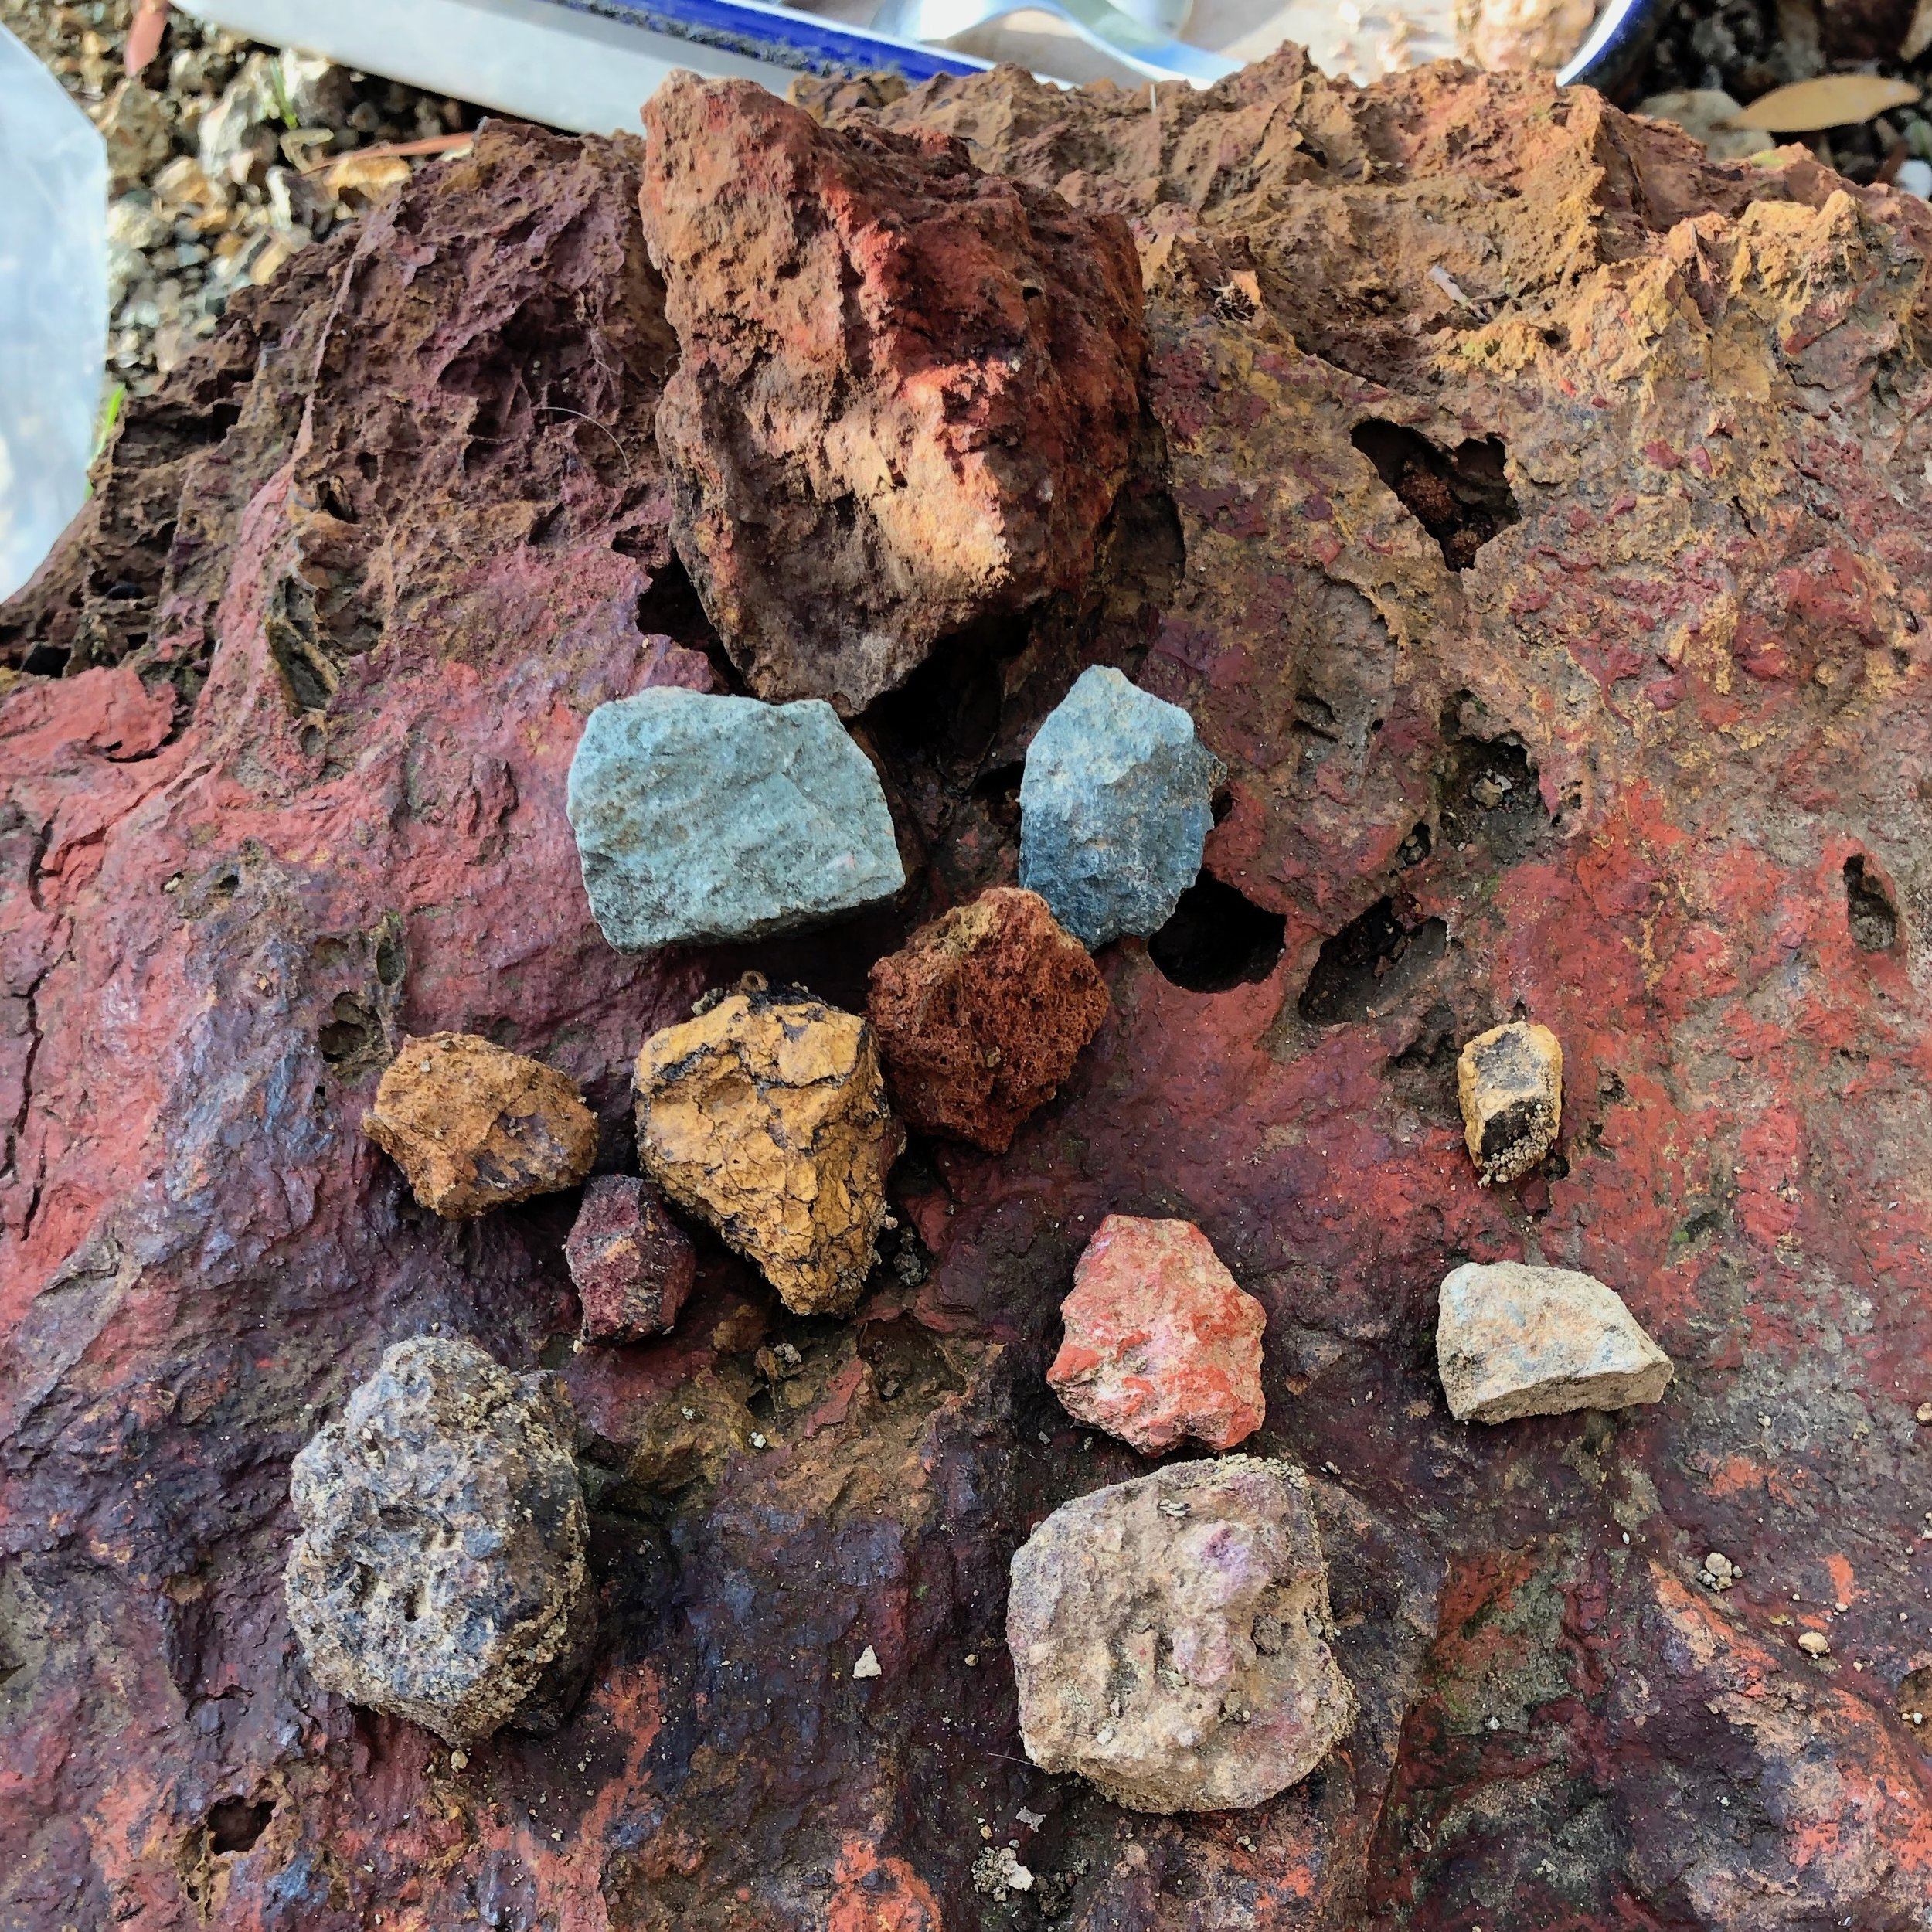 THE HIKE - During the trek, Heidi shared information on Ohlone culture, ochre-based traditions, and the story of the area as everyone collected rocks for pigment-making.